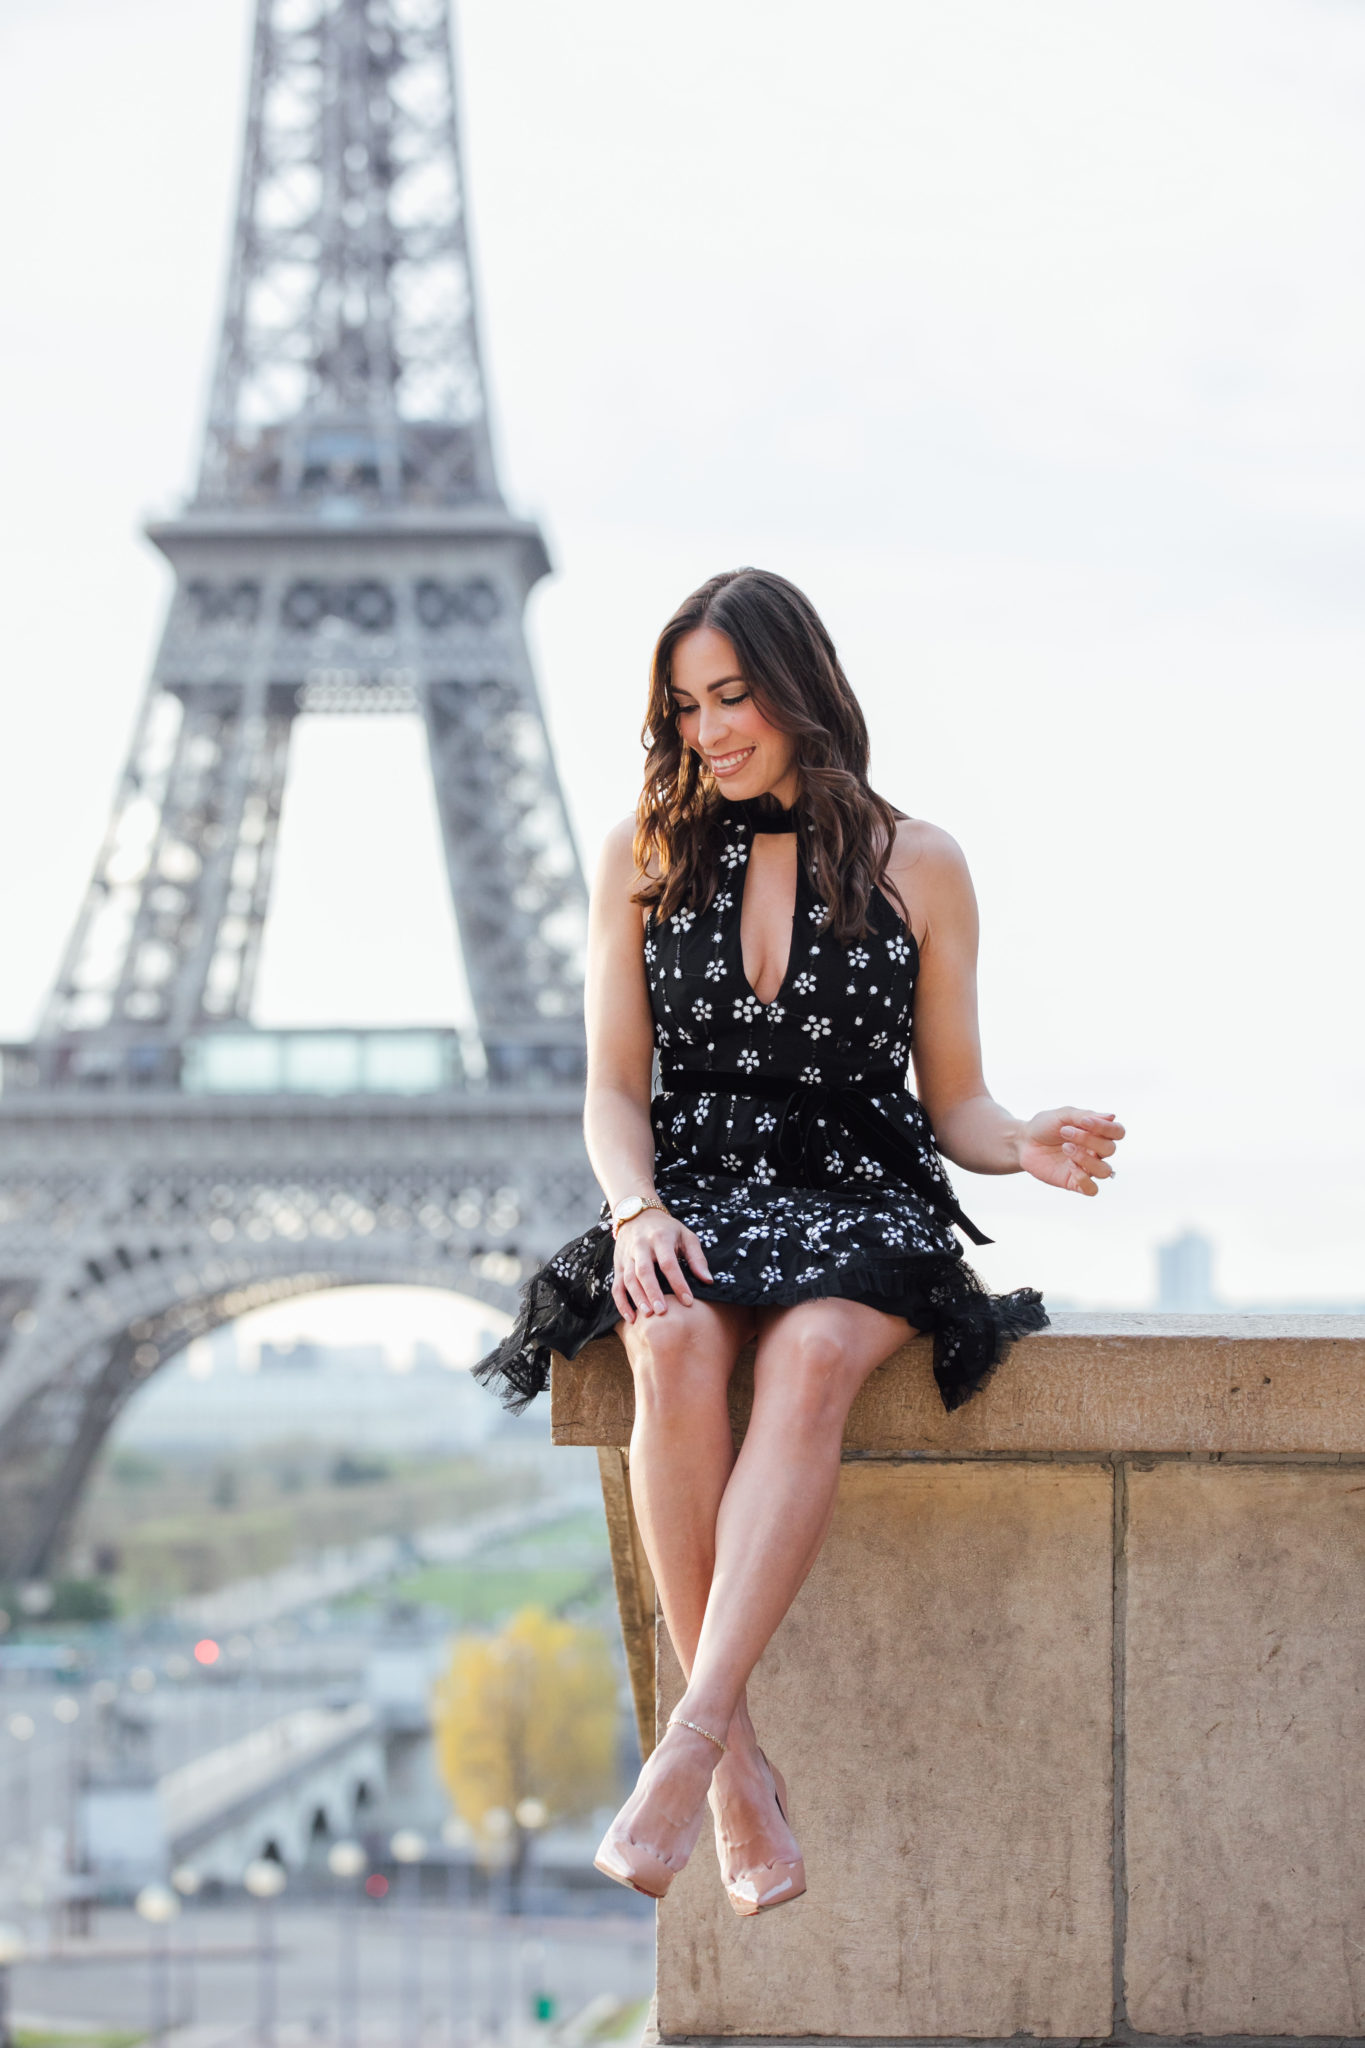 Alexis dresses at the Eiffel Tower in Paris as shown by Amanda of A Glam Lifestyle blog in the Paris Eiffel Tower